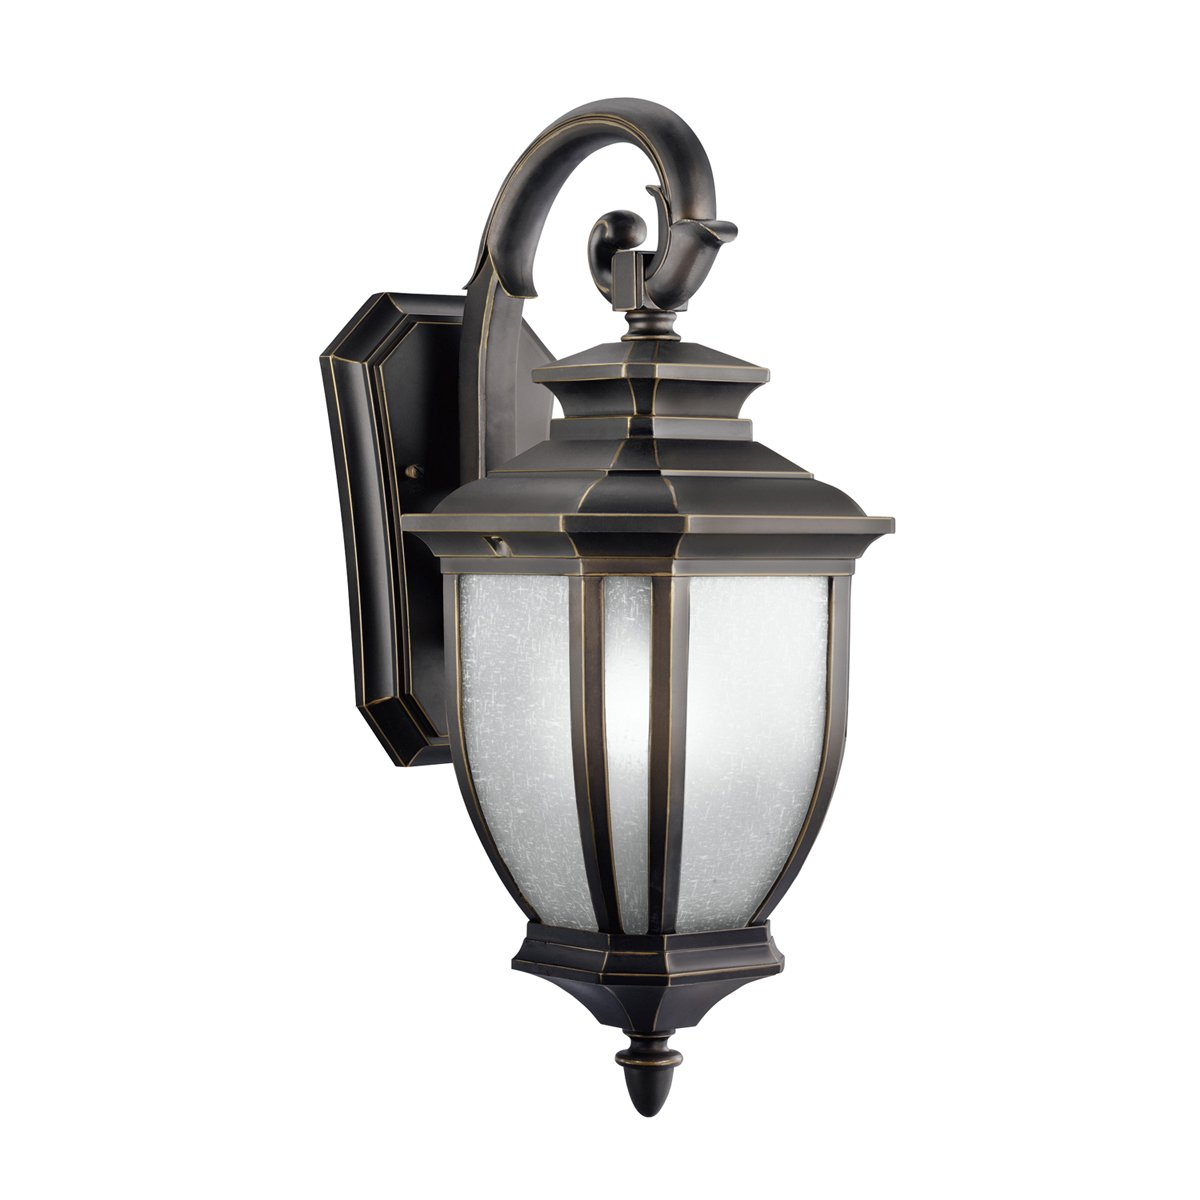 Kichler Lighting 9040RZ Salisbury 1-Light Outdoor Wall Mount Fixture, Rubbed Bronze with White Linen Glass by Kichler B000PWD6WM